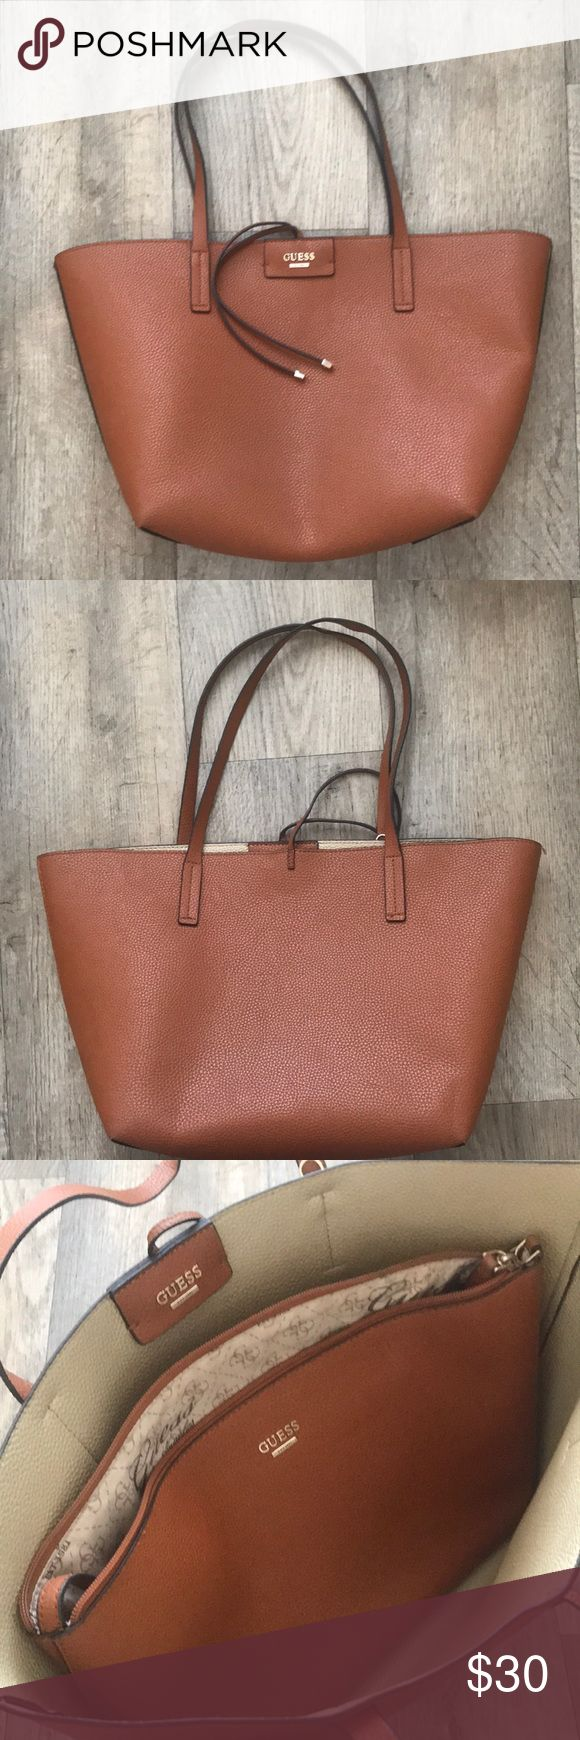 Guess Tote bag - reversible Brown tote bag - barely used - purchased in 2016 - removable insert - NO DAMAGE Guess Bags Totes